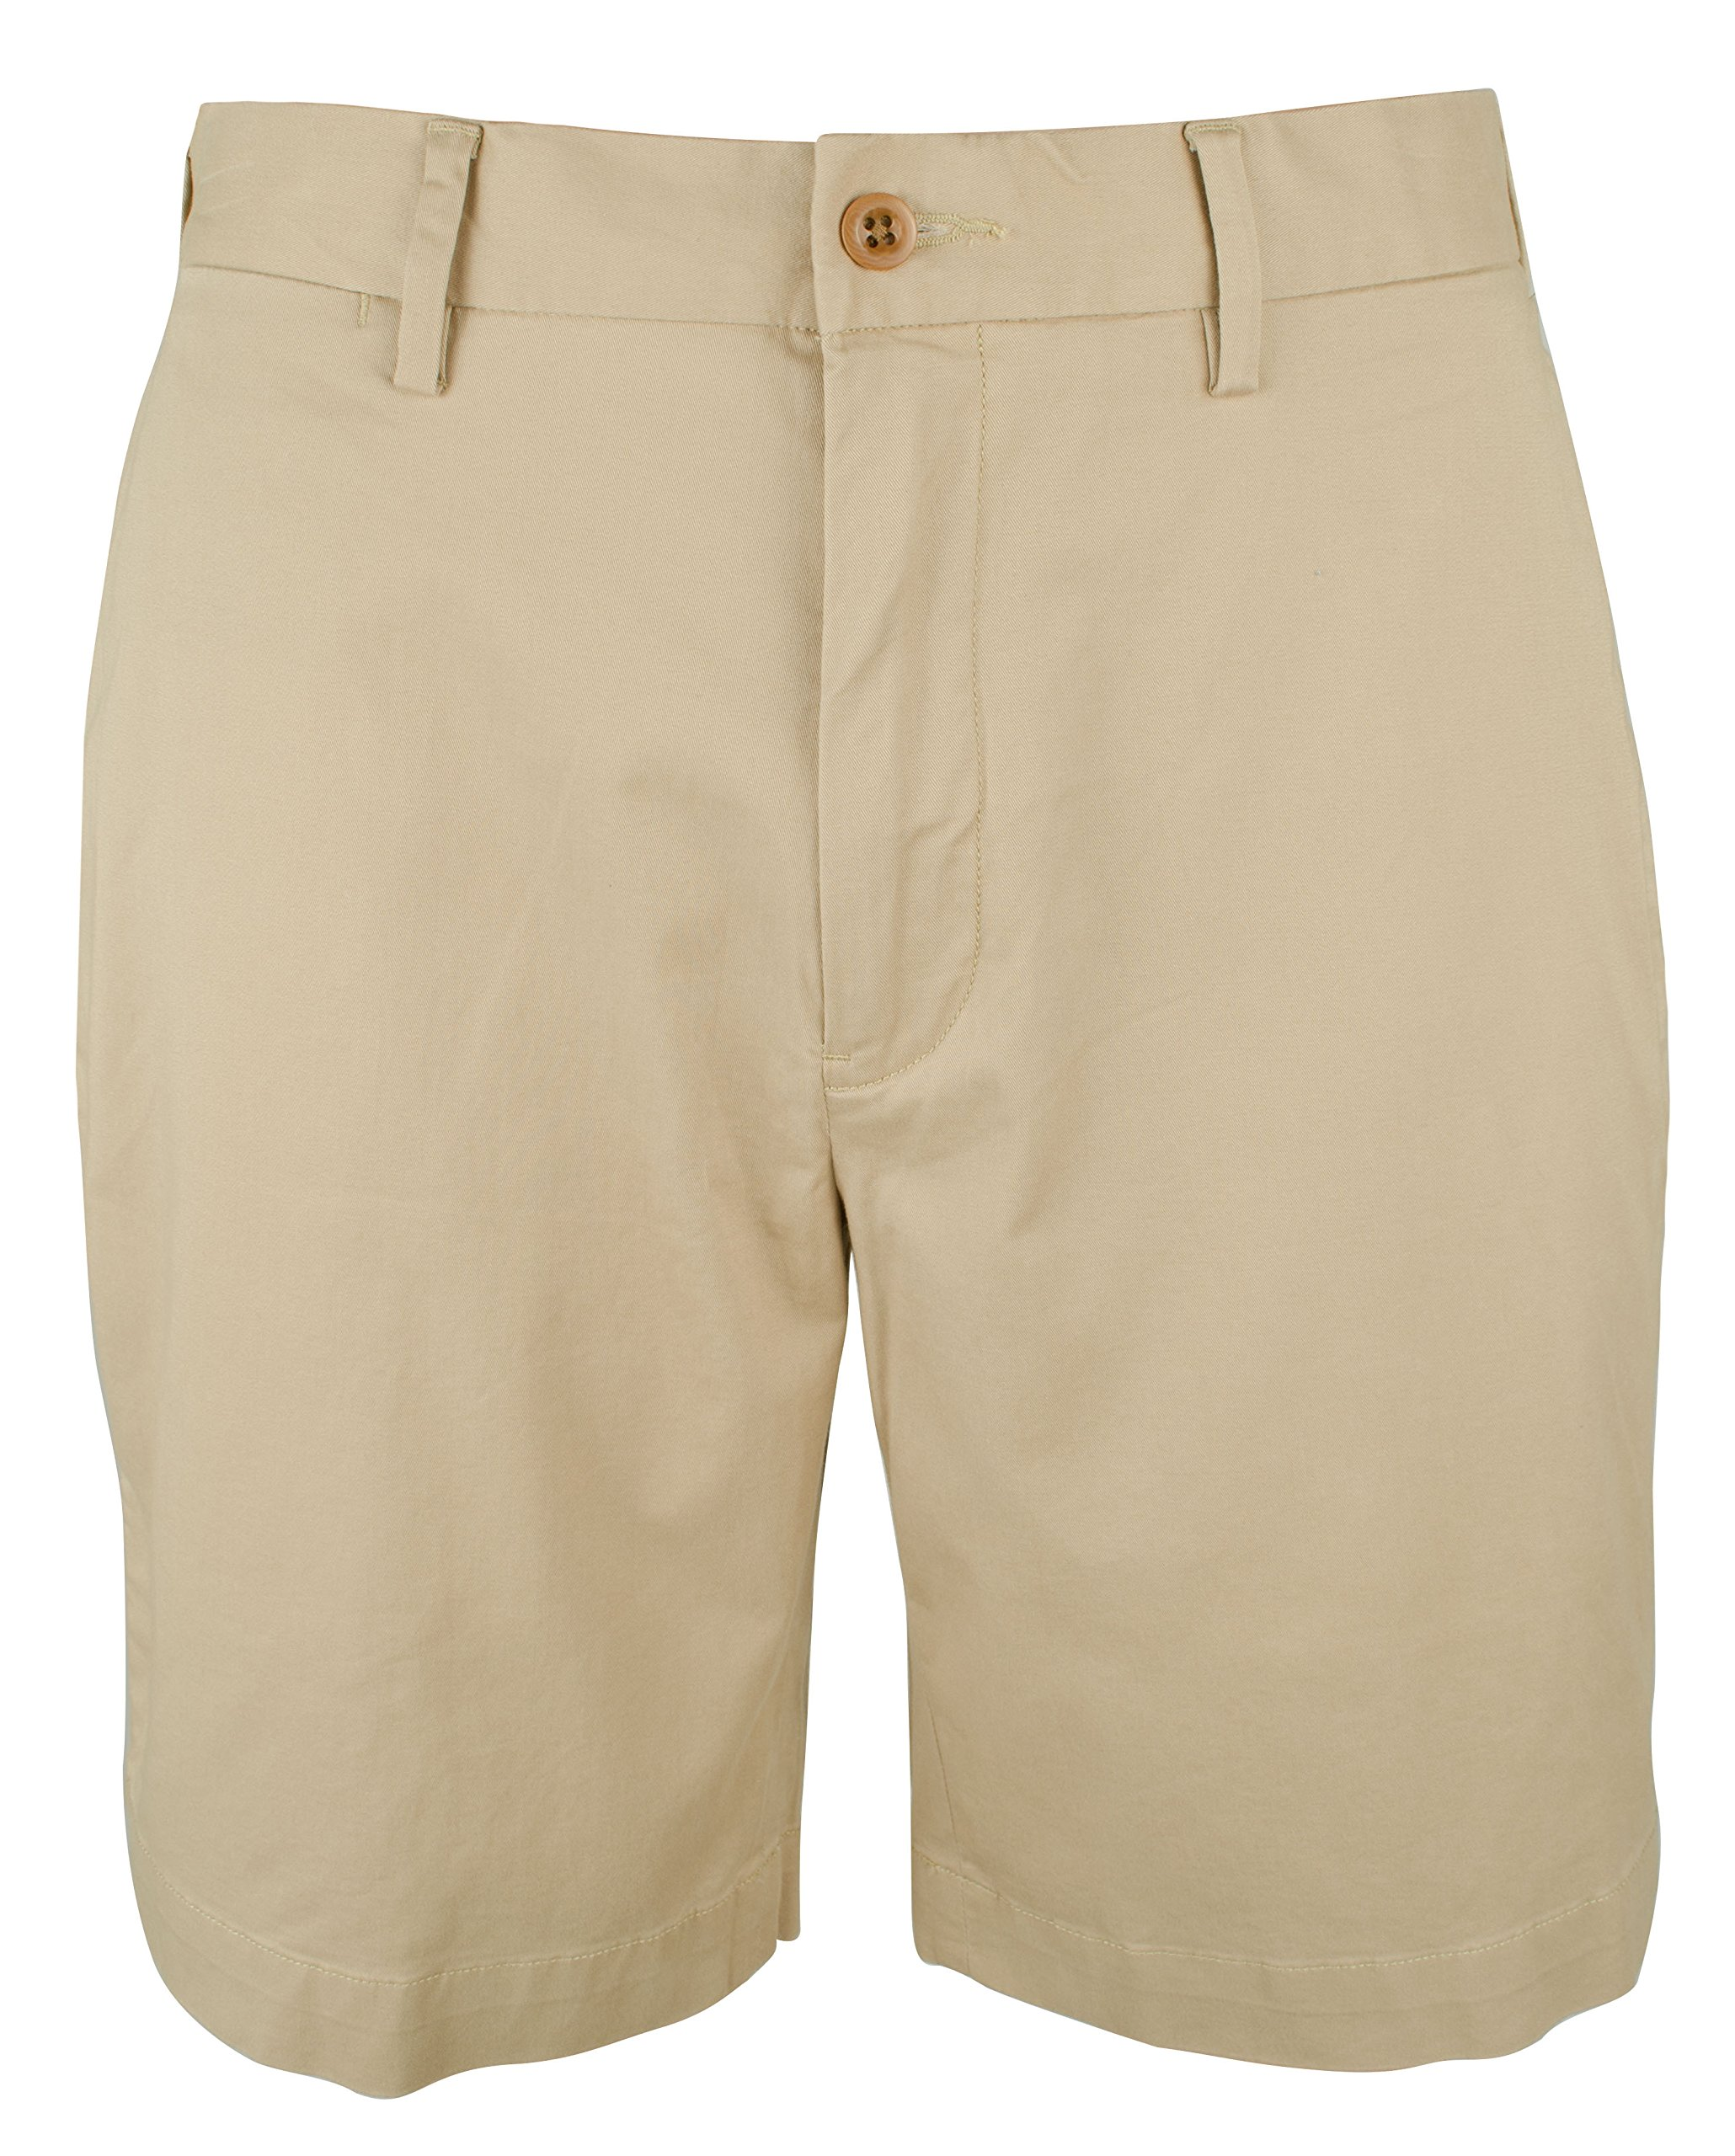 Polo Ralph Lauren Men's Big and Tall Stretch Classic Fit 9'' Shorts-CB-48B